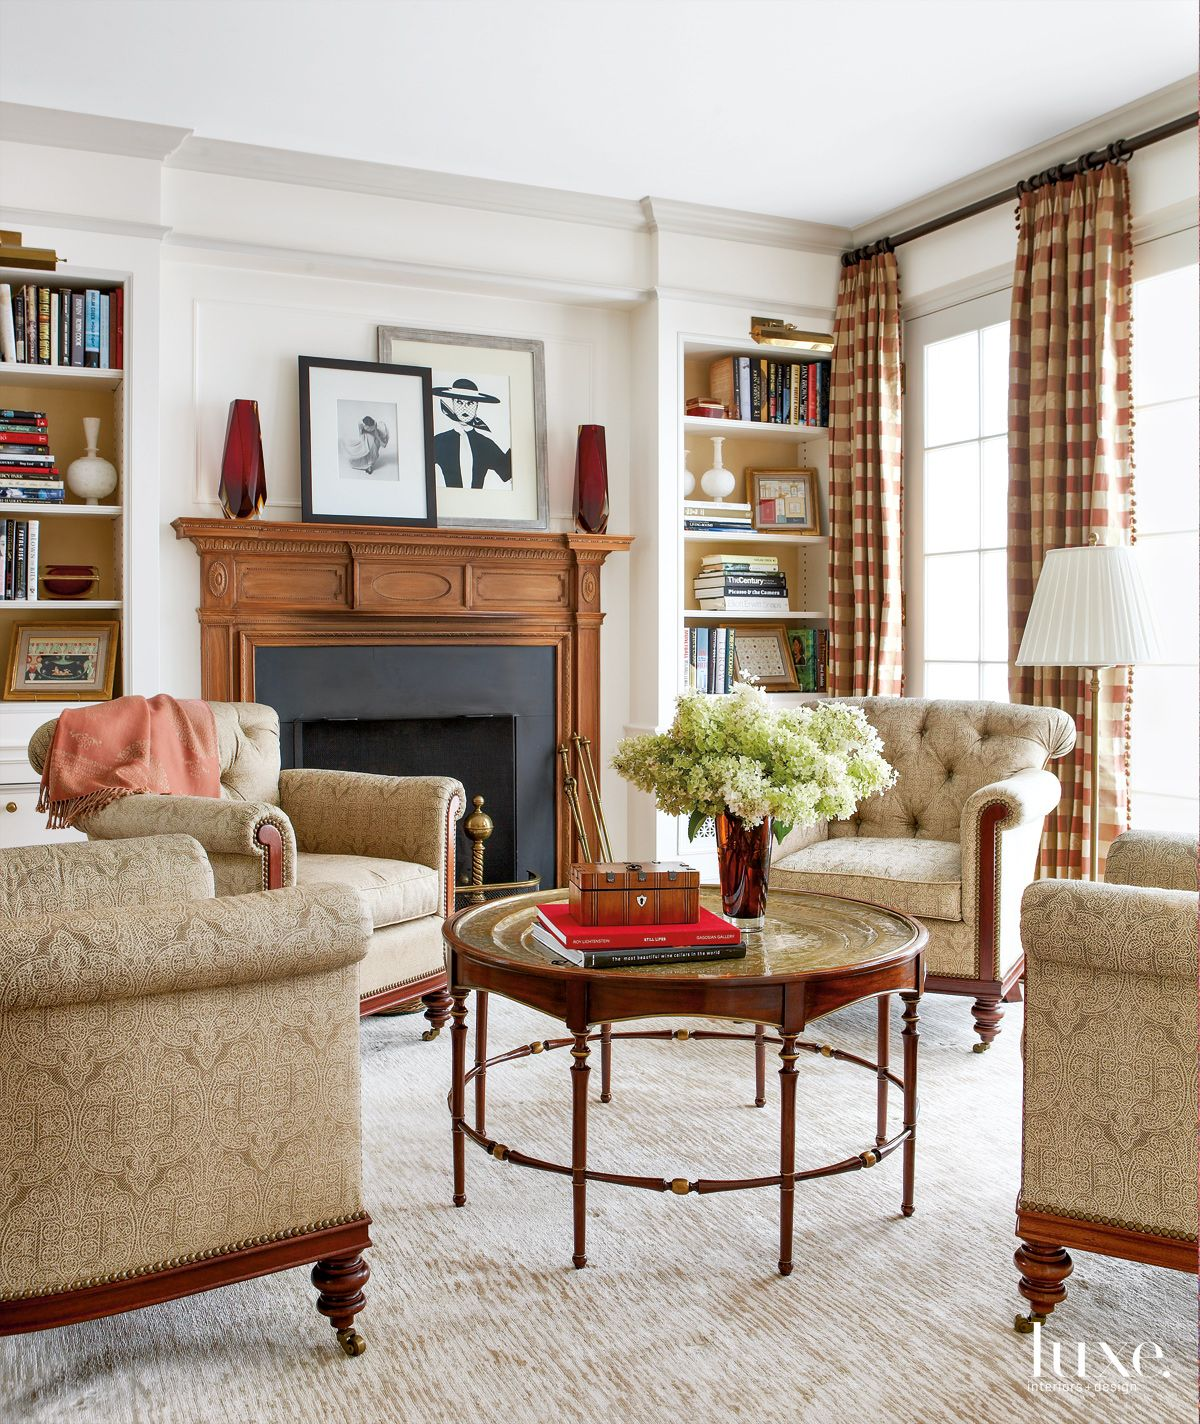 Traditional White Parlor with Antique Coffee Table